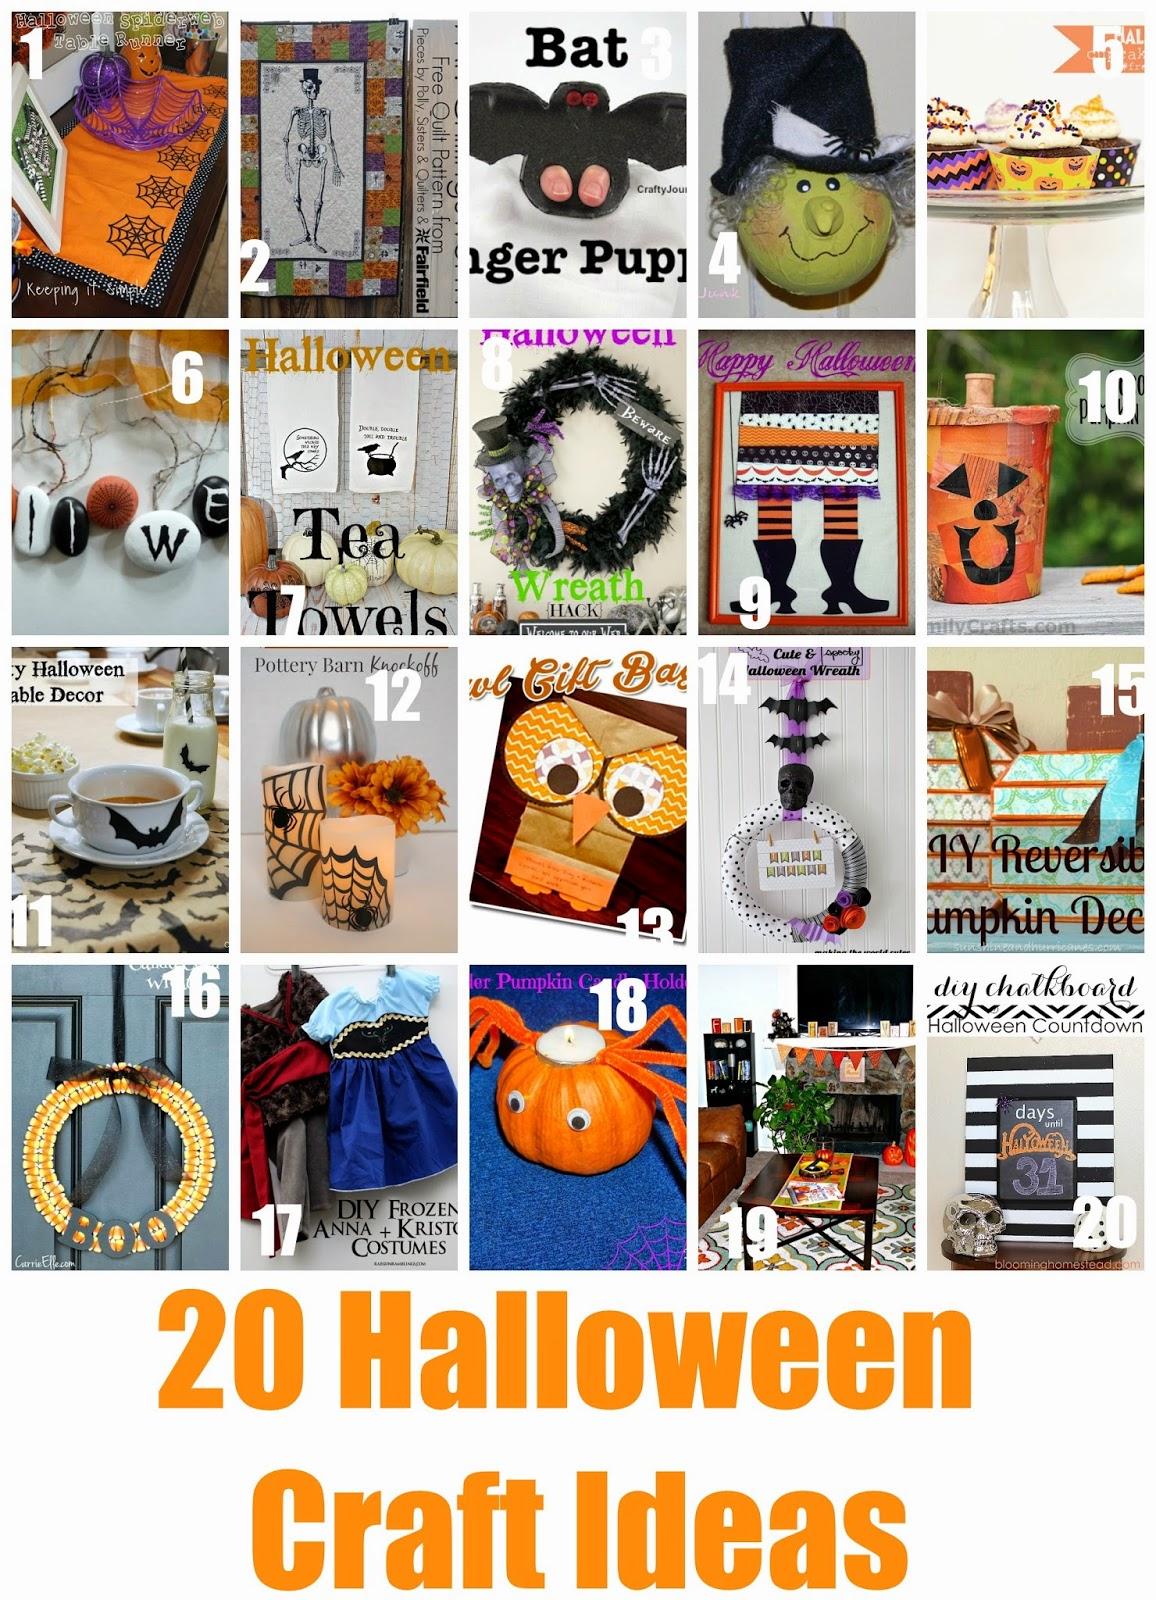 20 Halloween Craft Ideas